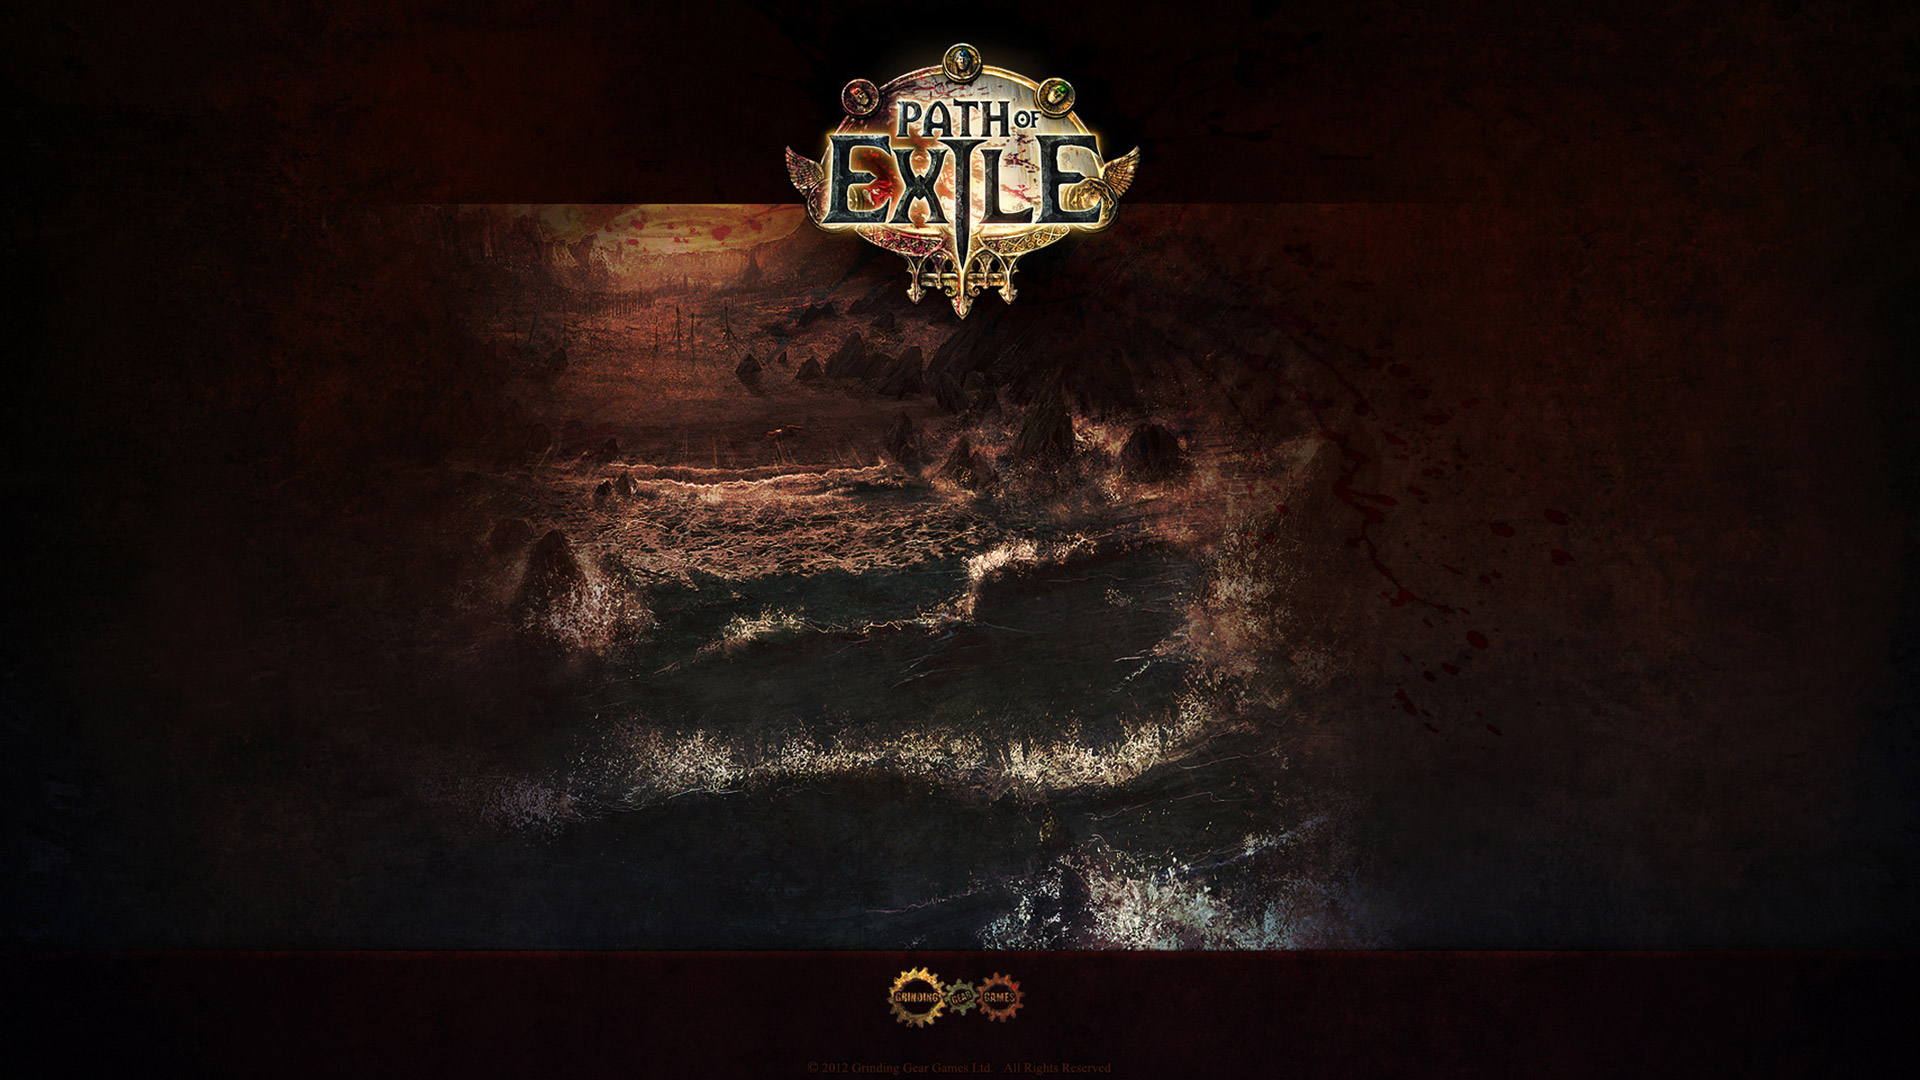 Free Path of Exile Wallpaper in 1920x1080